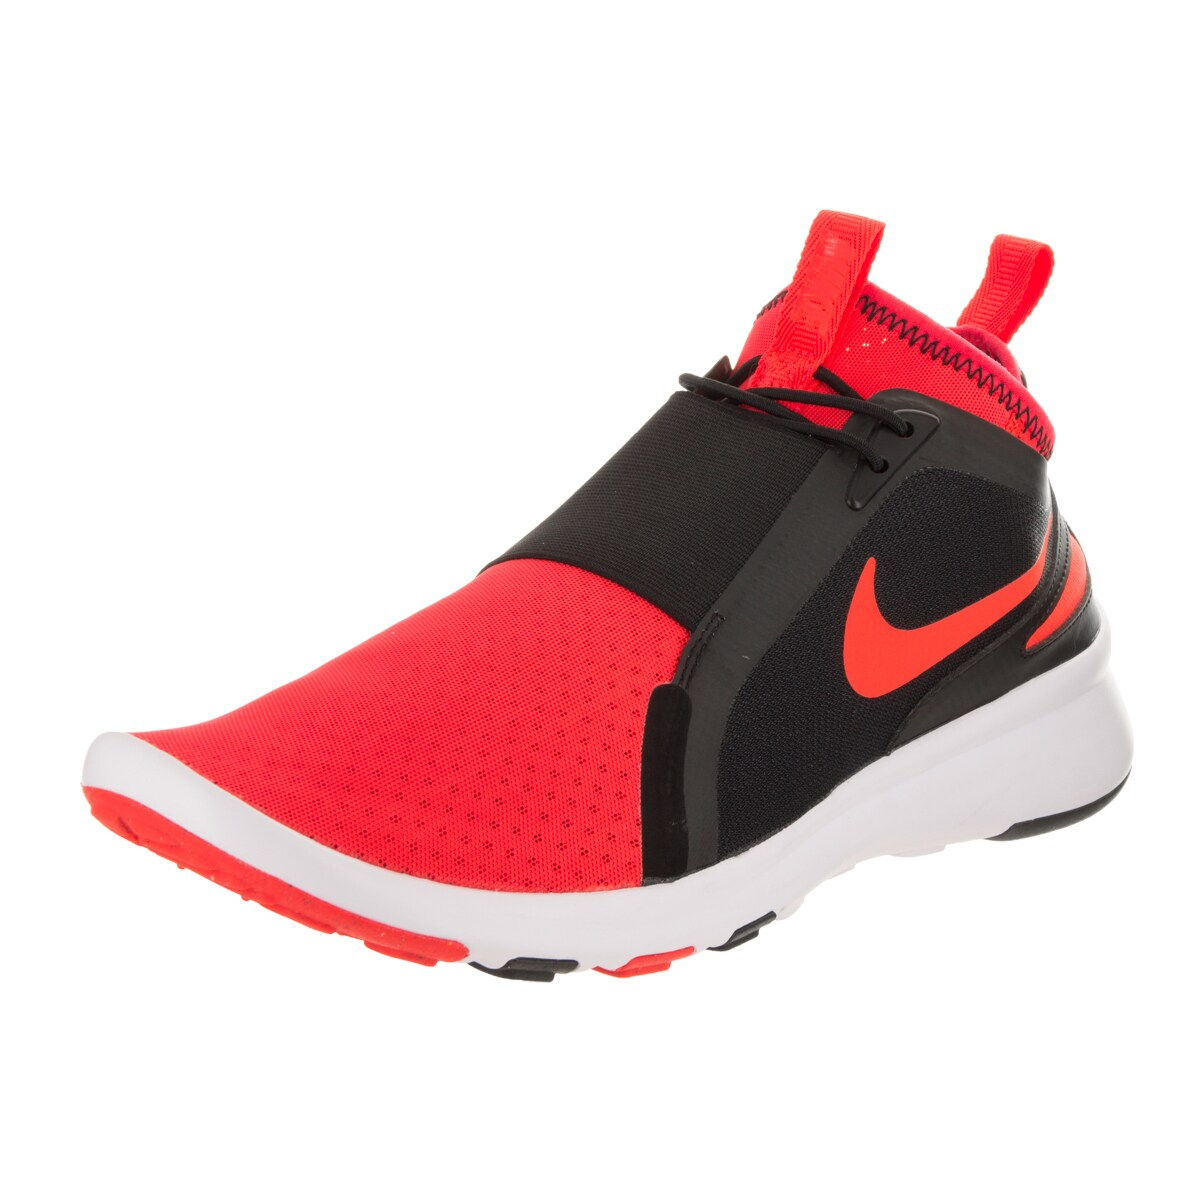 Nike Men's Current Red/Black Fabric Slip-on Casual Shoe (...